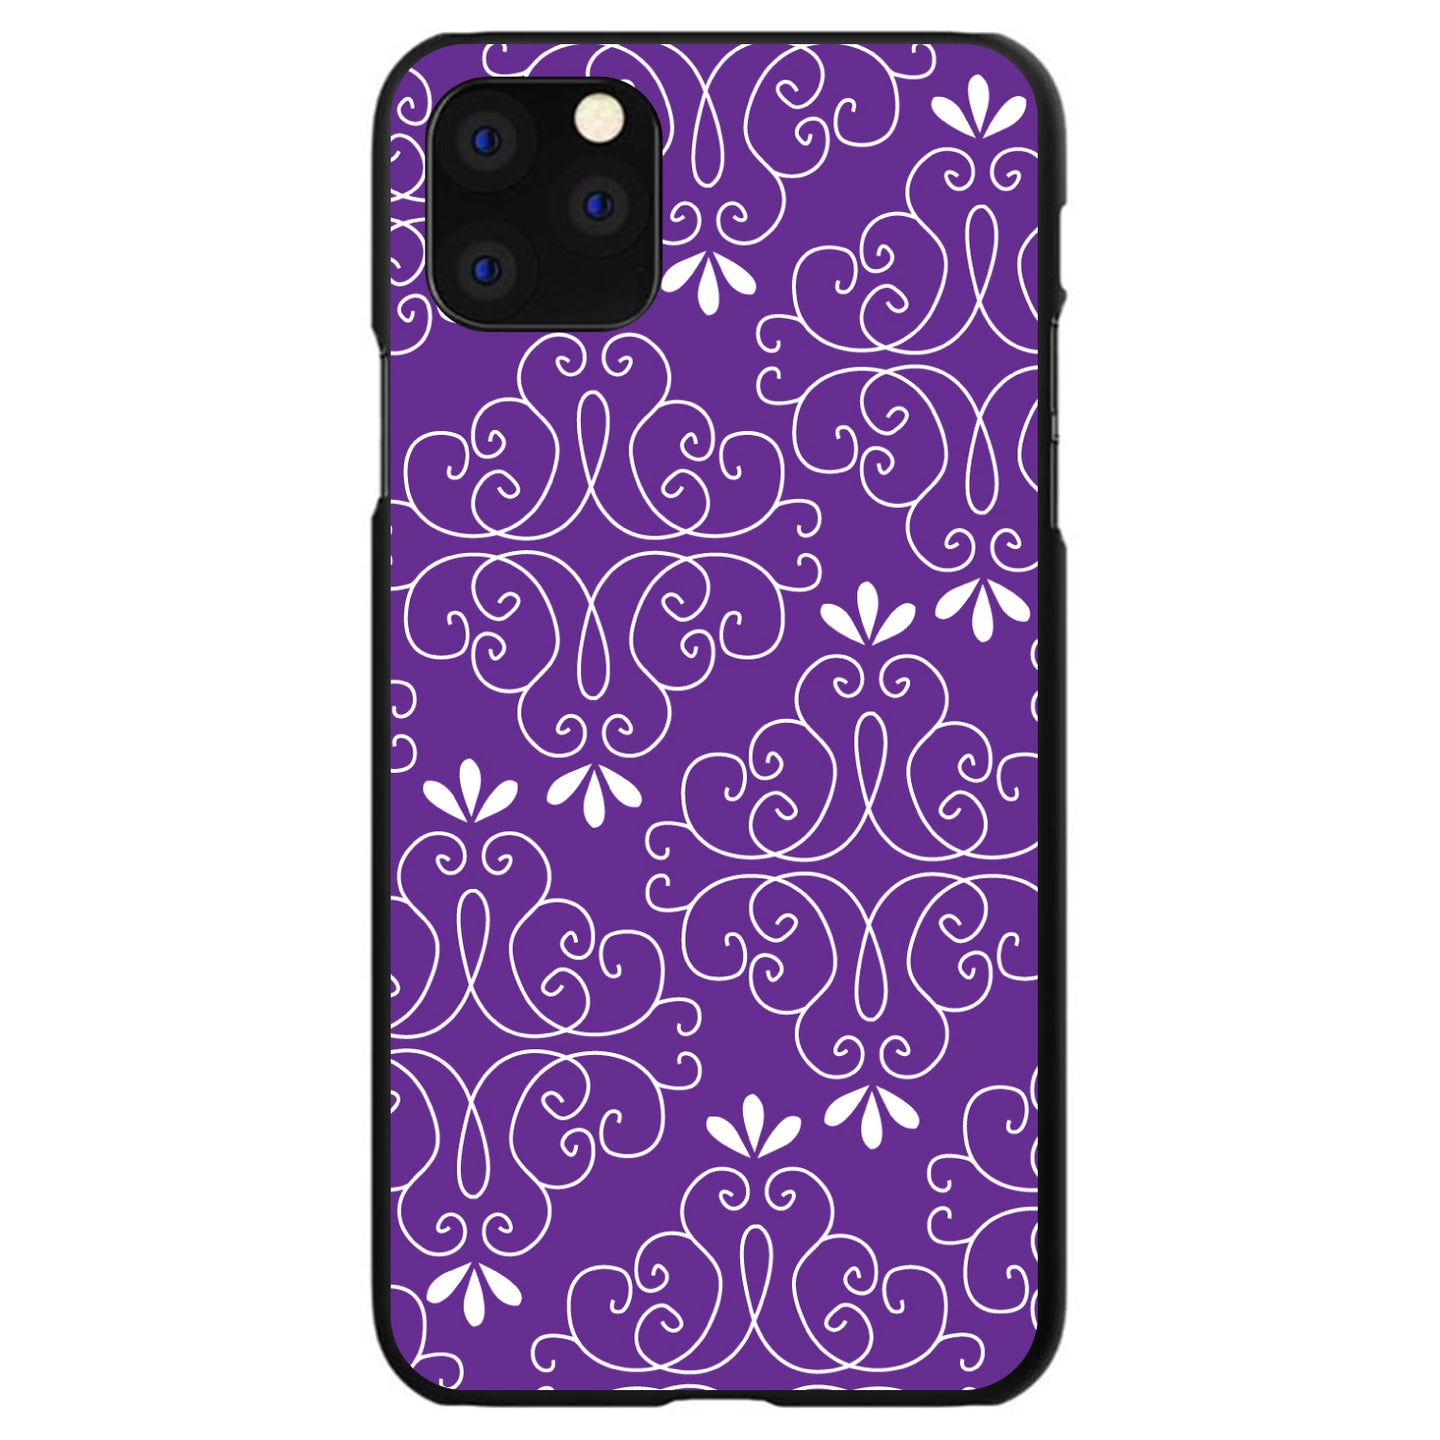 DistinctInk® Hard Plastic Snap-On Case for Apple iPhone - Purple White Floral